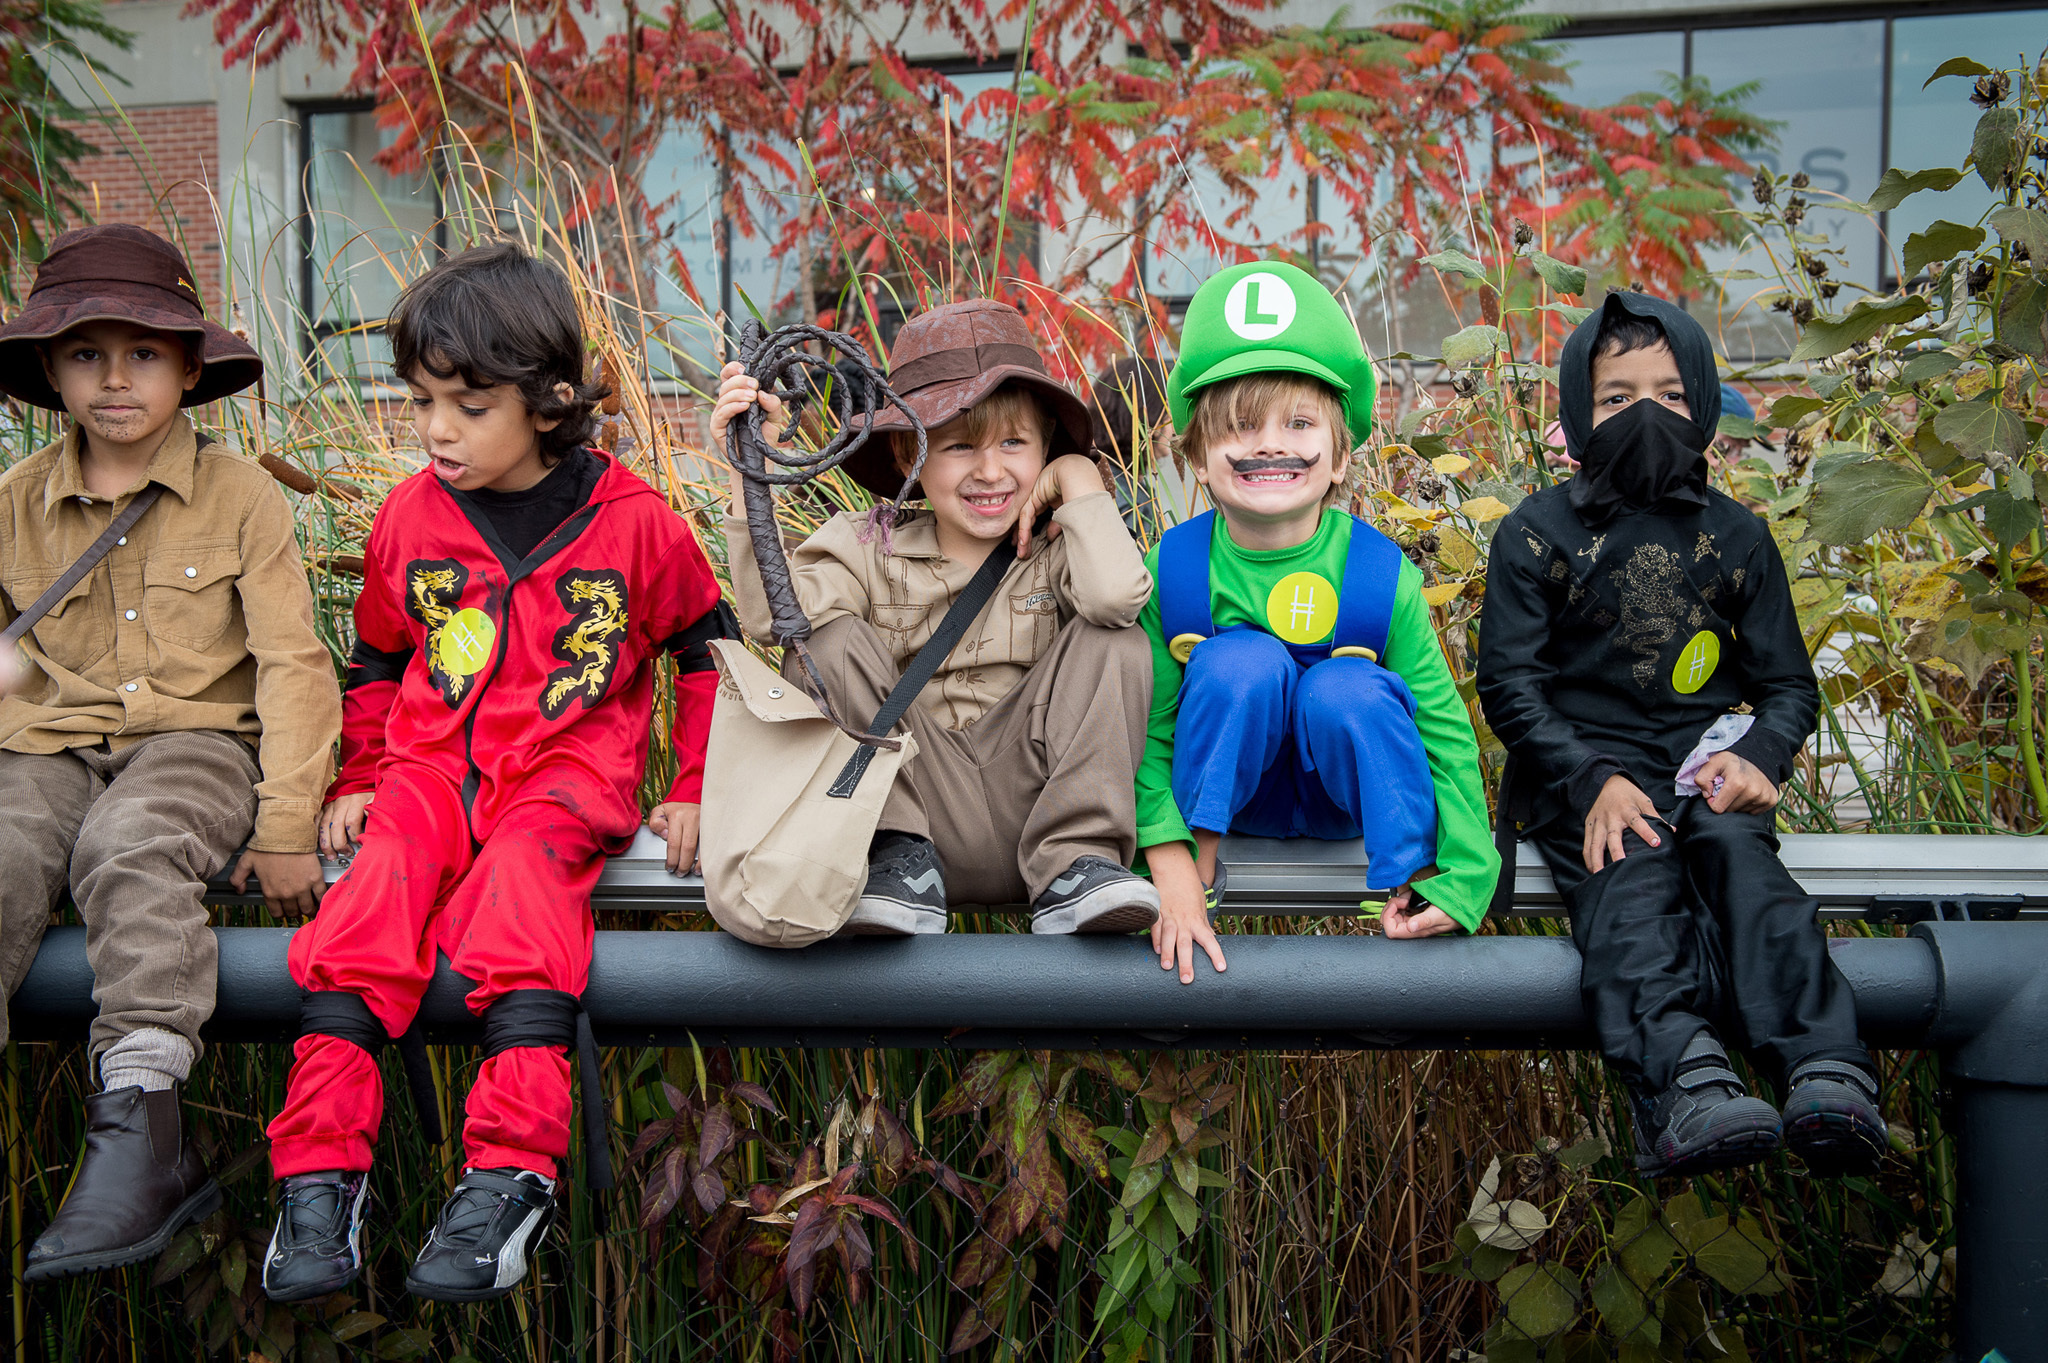 Guide to Halloween for kids in NYC